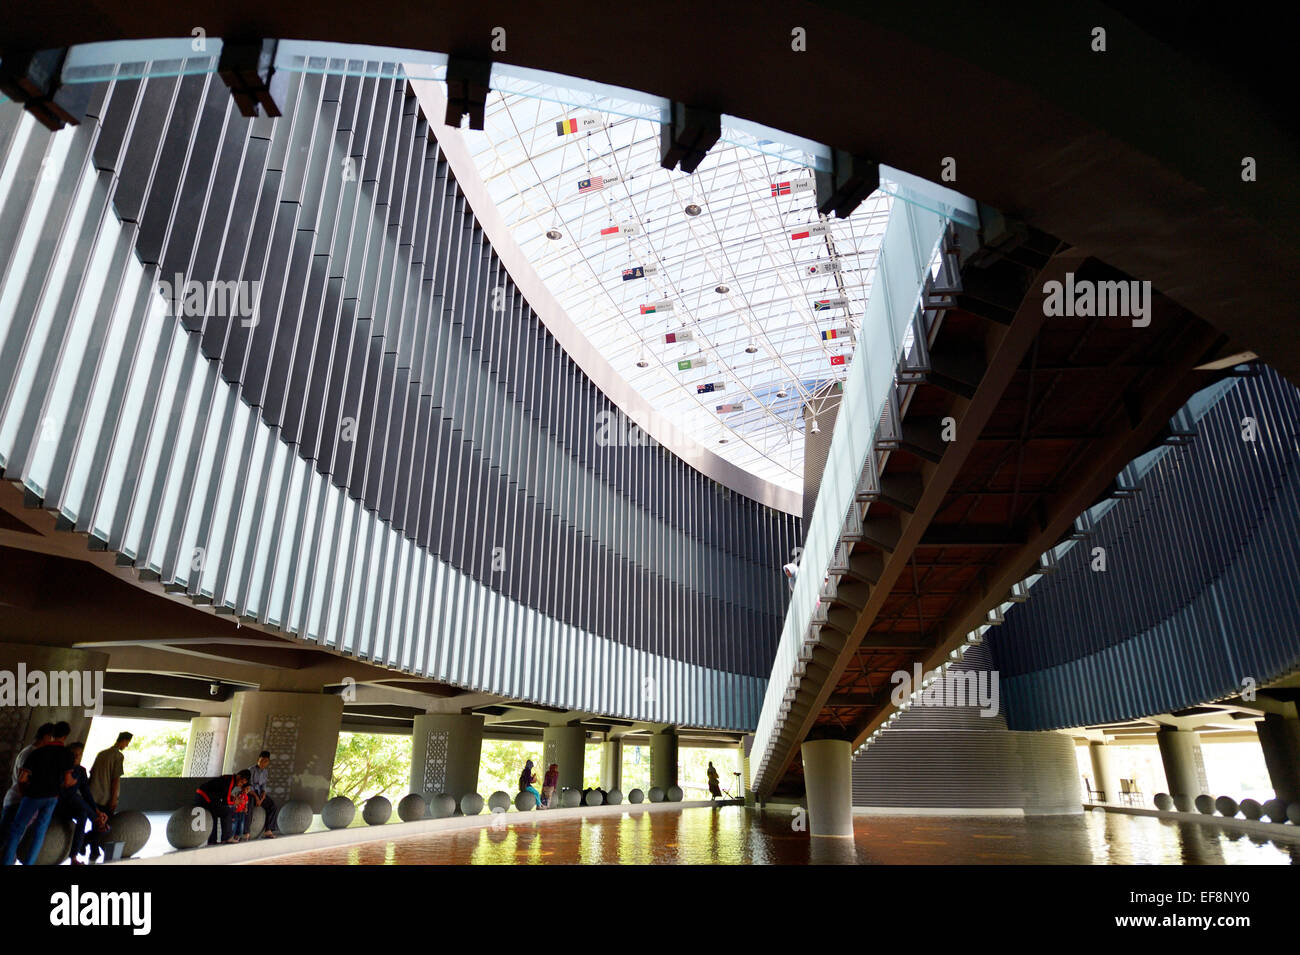 Interior of the Aceh Tsunami Museum reminds of the 2004 tsunami, Banda Aceh, Indonesia Stock Photo